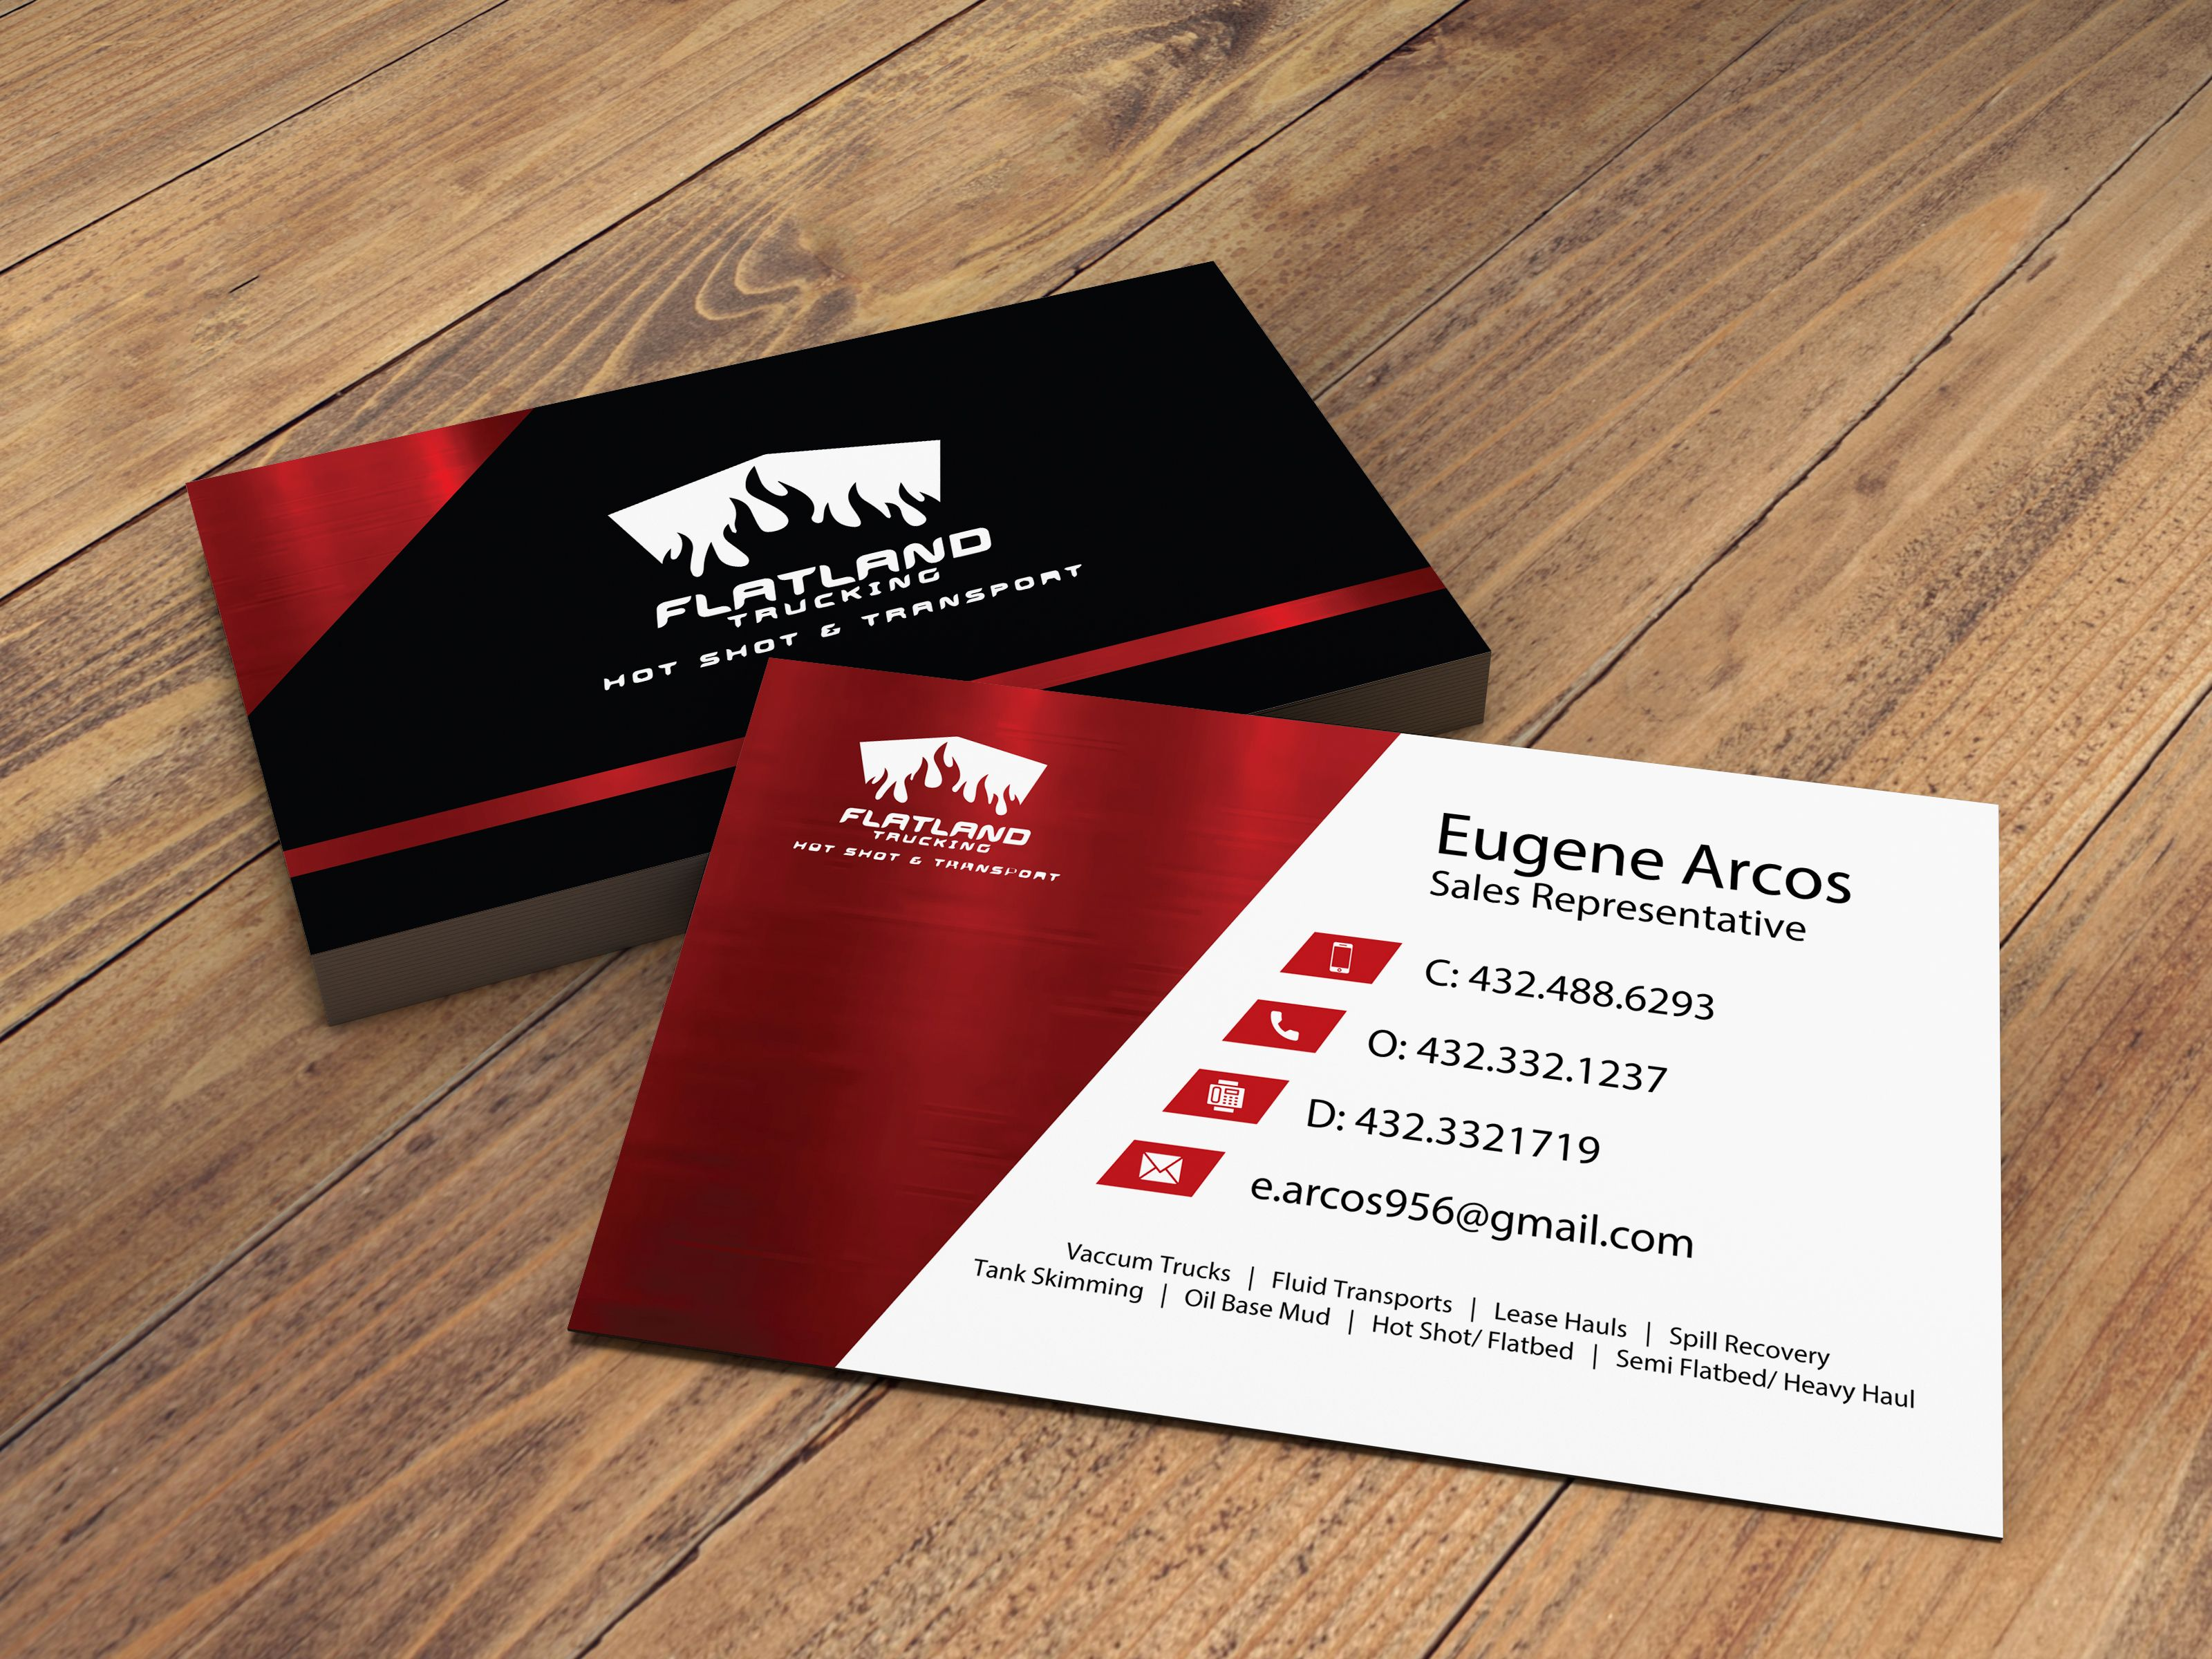 Designeverytime I Will Do Uv Spot Business Card Design With In 24 Hours For 10 On Fiverr Com Business Card Design Card Design Gold Foil Business Cards